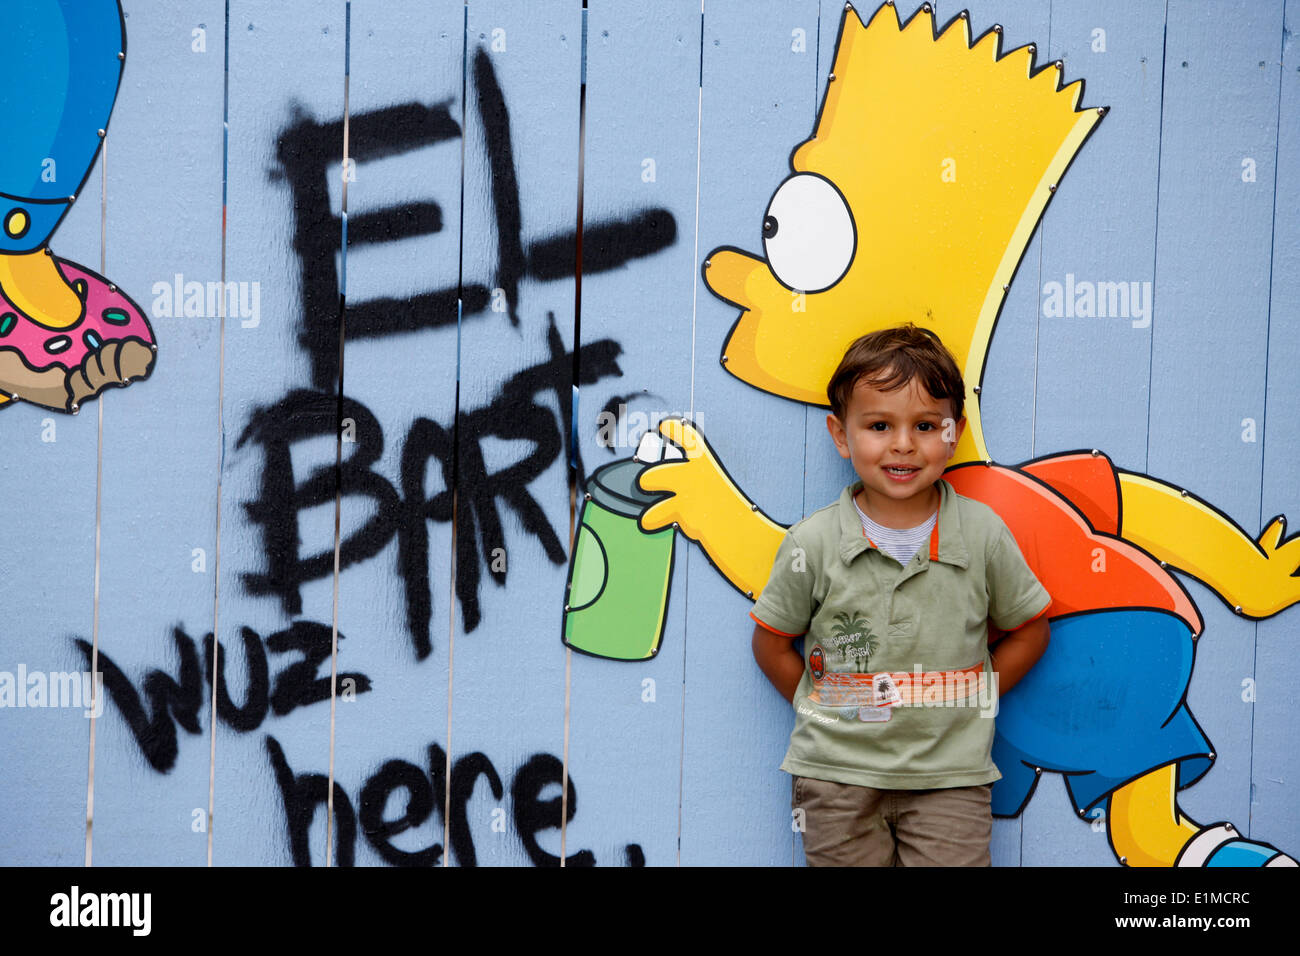 Boy standing in front of a Bart Simpson mural at Universal Orlando - Stock Image